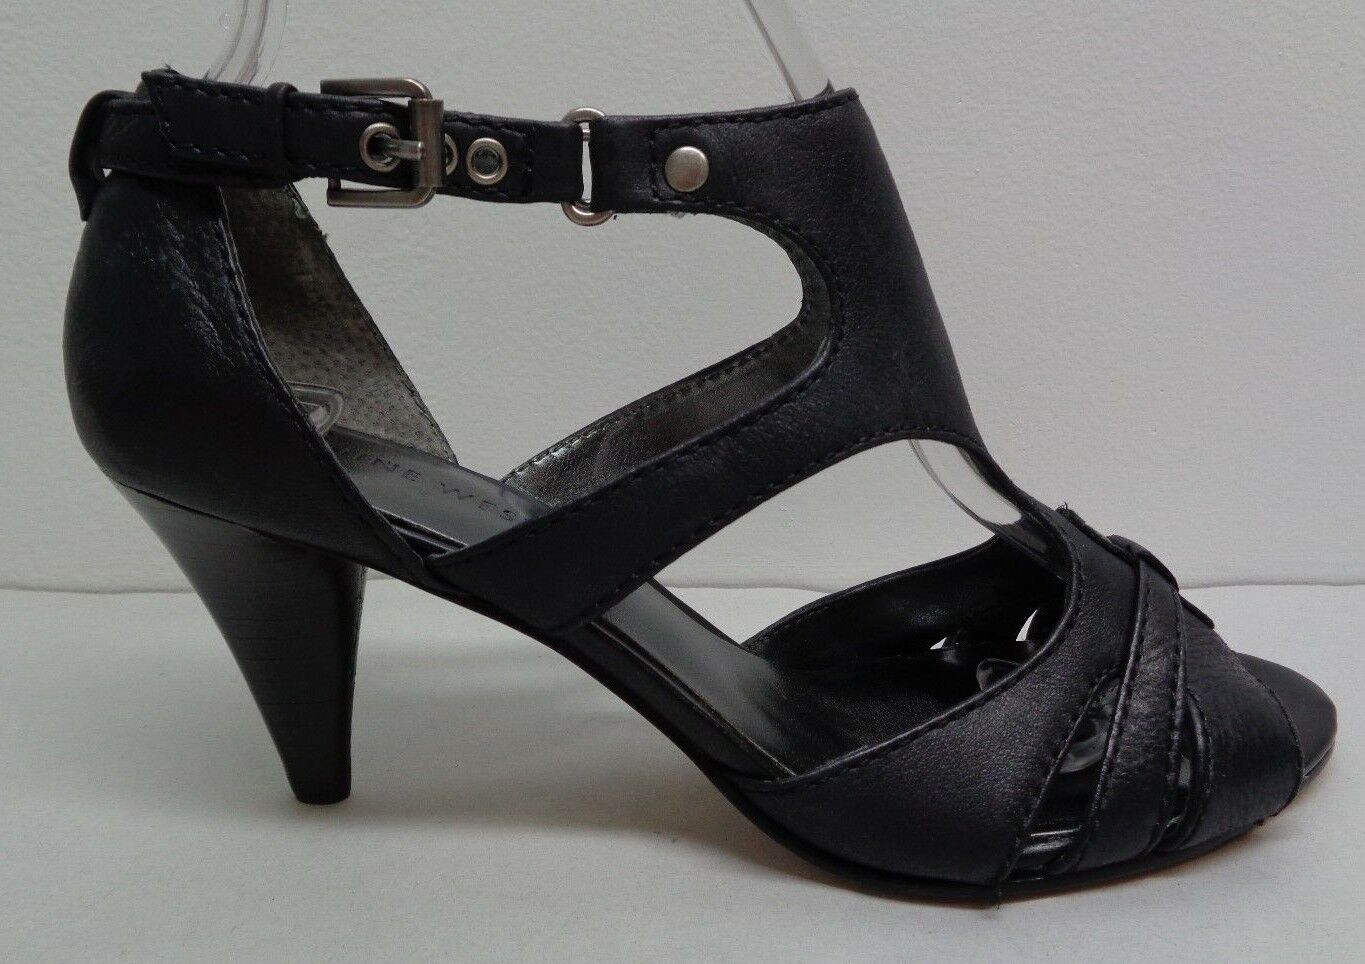 Nine West Size 6 M LESTYLE Black Leather Heels Heels Heels Sandals New Womens shoes a281a9